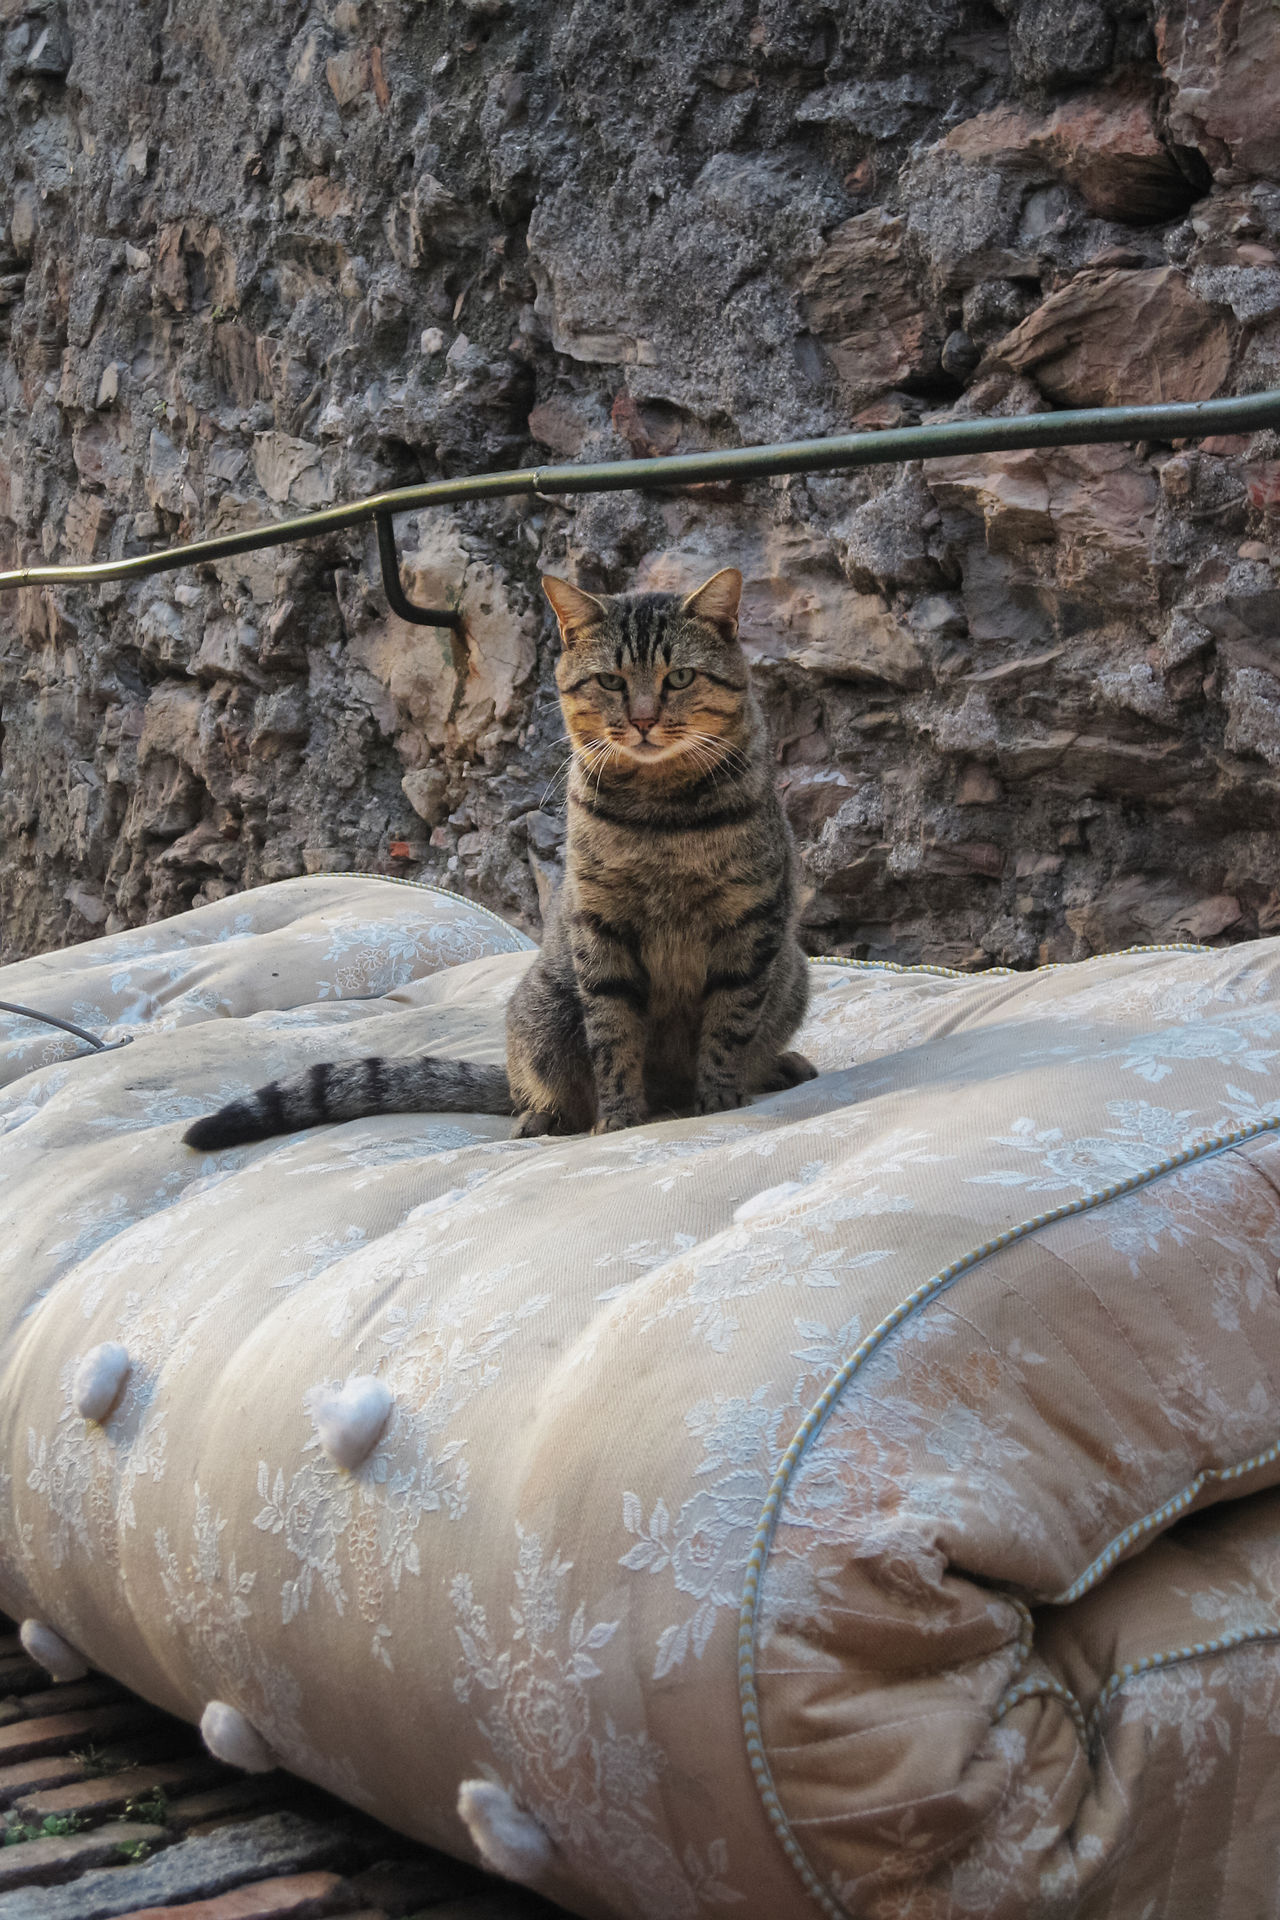 A cat on a mattress ( The king of the Crêuza) Animal Themes Cat Close-up Day Domestic Animals Domestic Cat Feline Looking At Camera Mammal Matress No People One Animal Outdoors Pets Portrait The Week On EyeEm